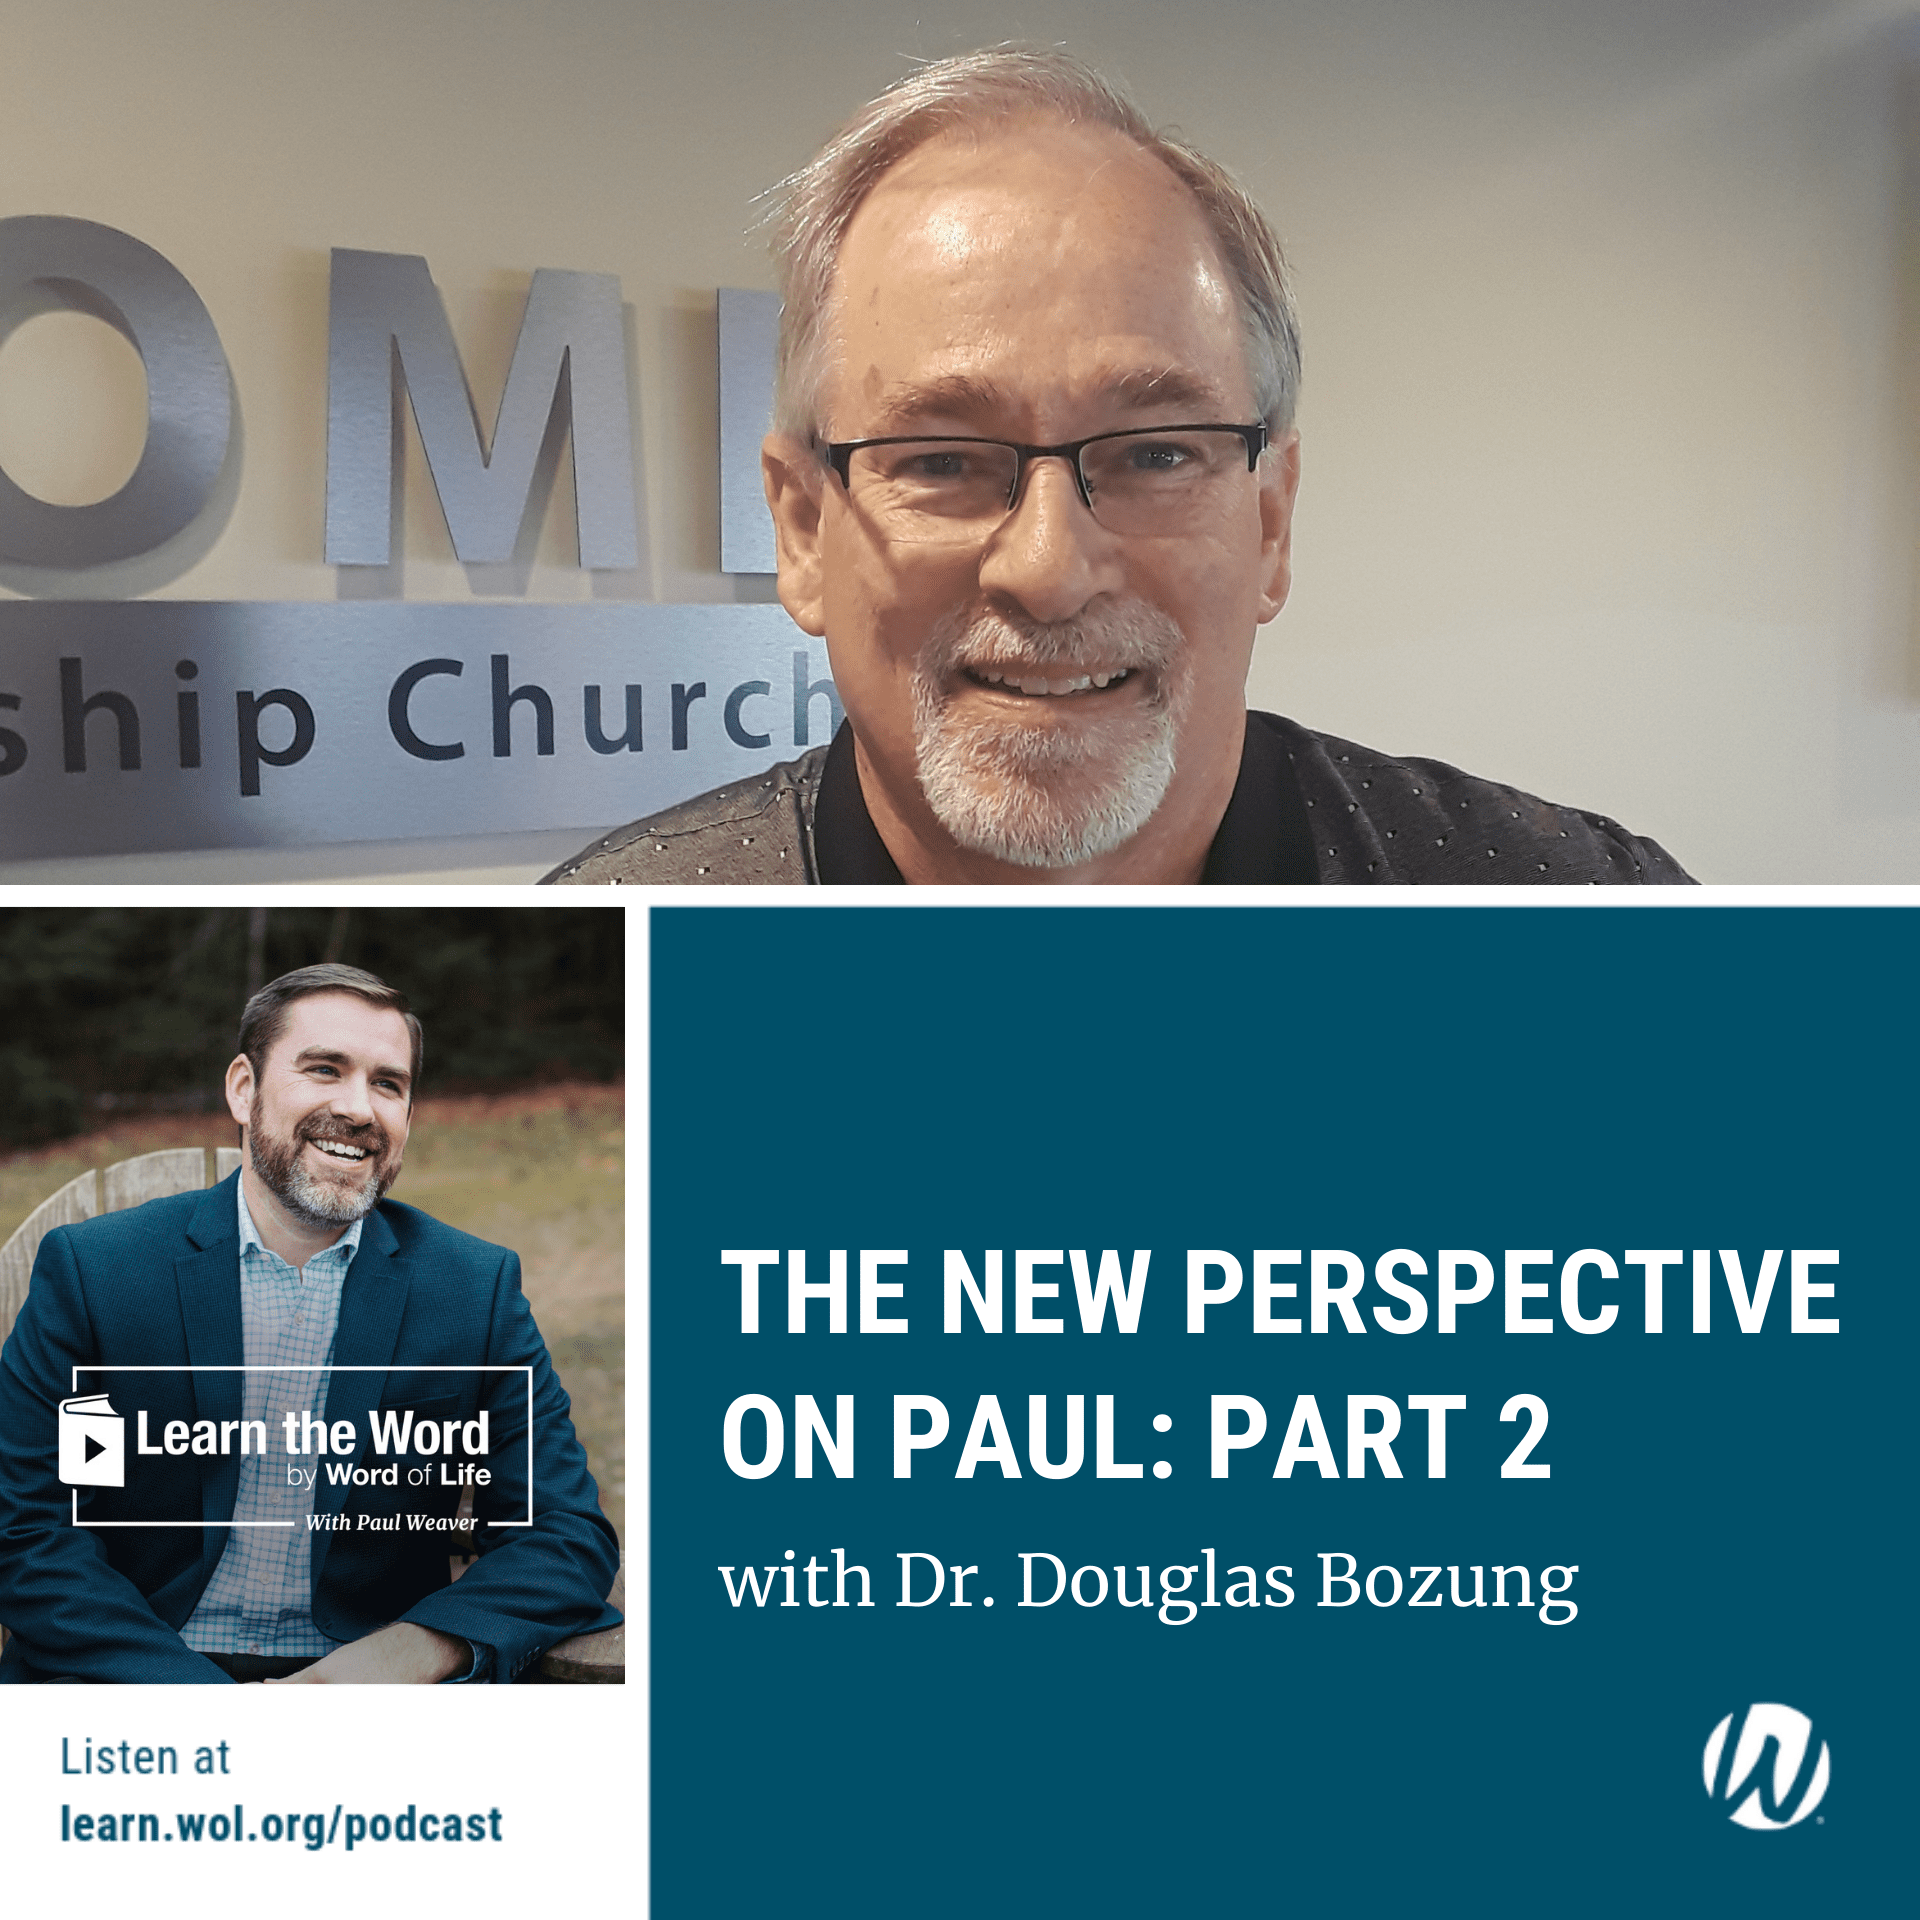 LTW173 - The New Perspective on Paul: Part 2 - with Dr. Douglas Bozung